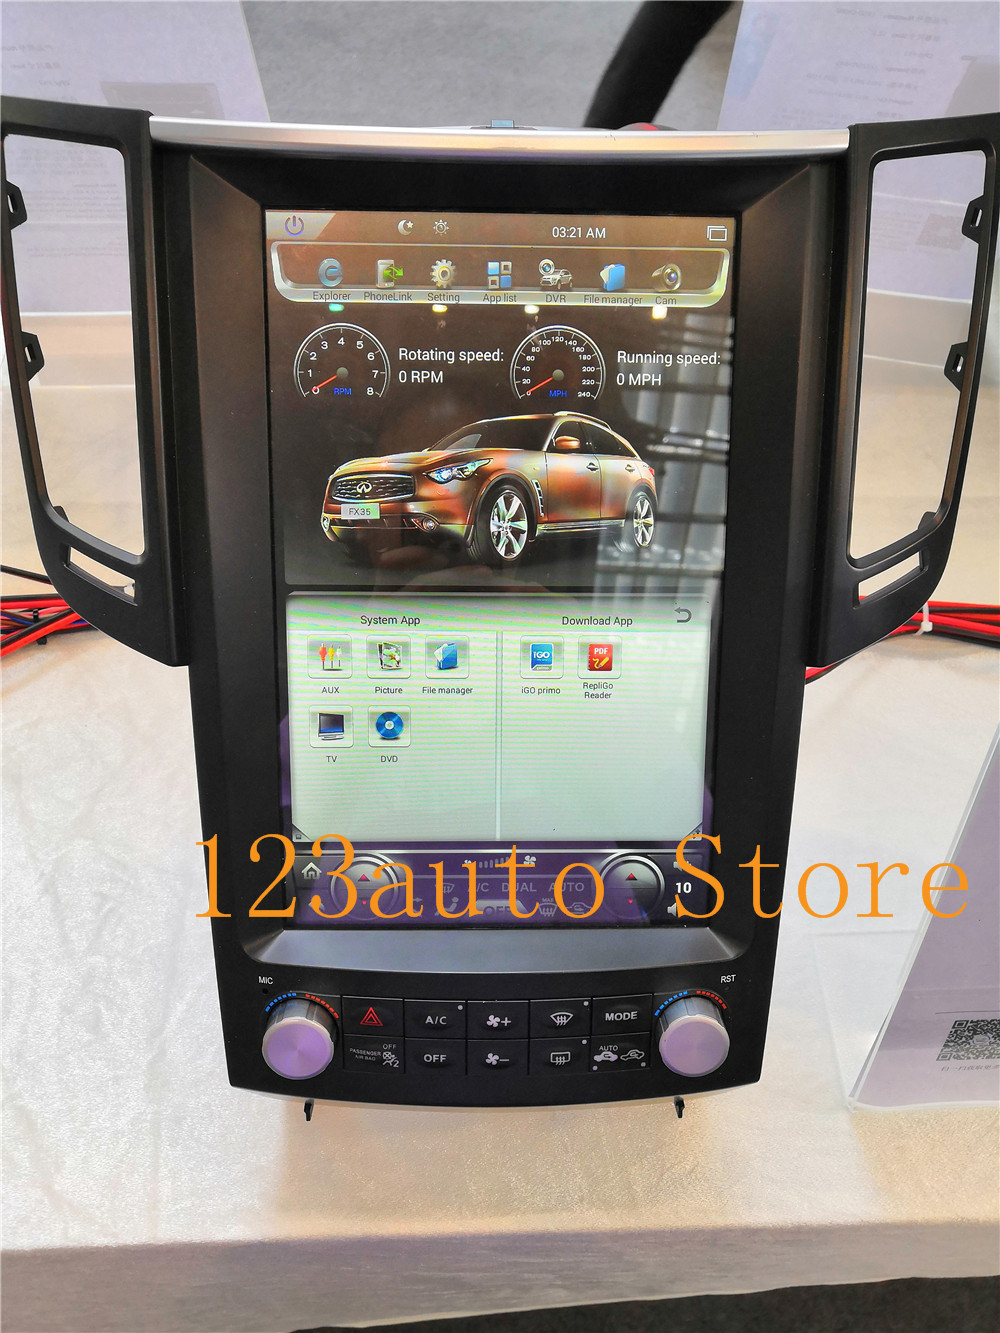 Autocardvdgps 12.1'' tesla style android 8.1 auto car dvd gps player for infiniti fx fx25  fx35 fx37 qx70 multimedia navigation stereo px6